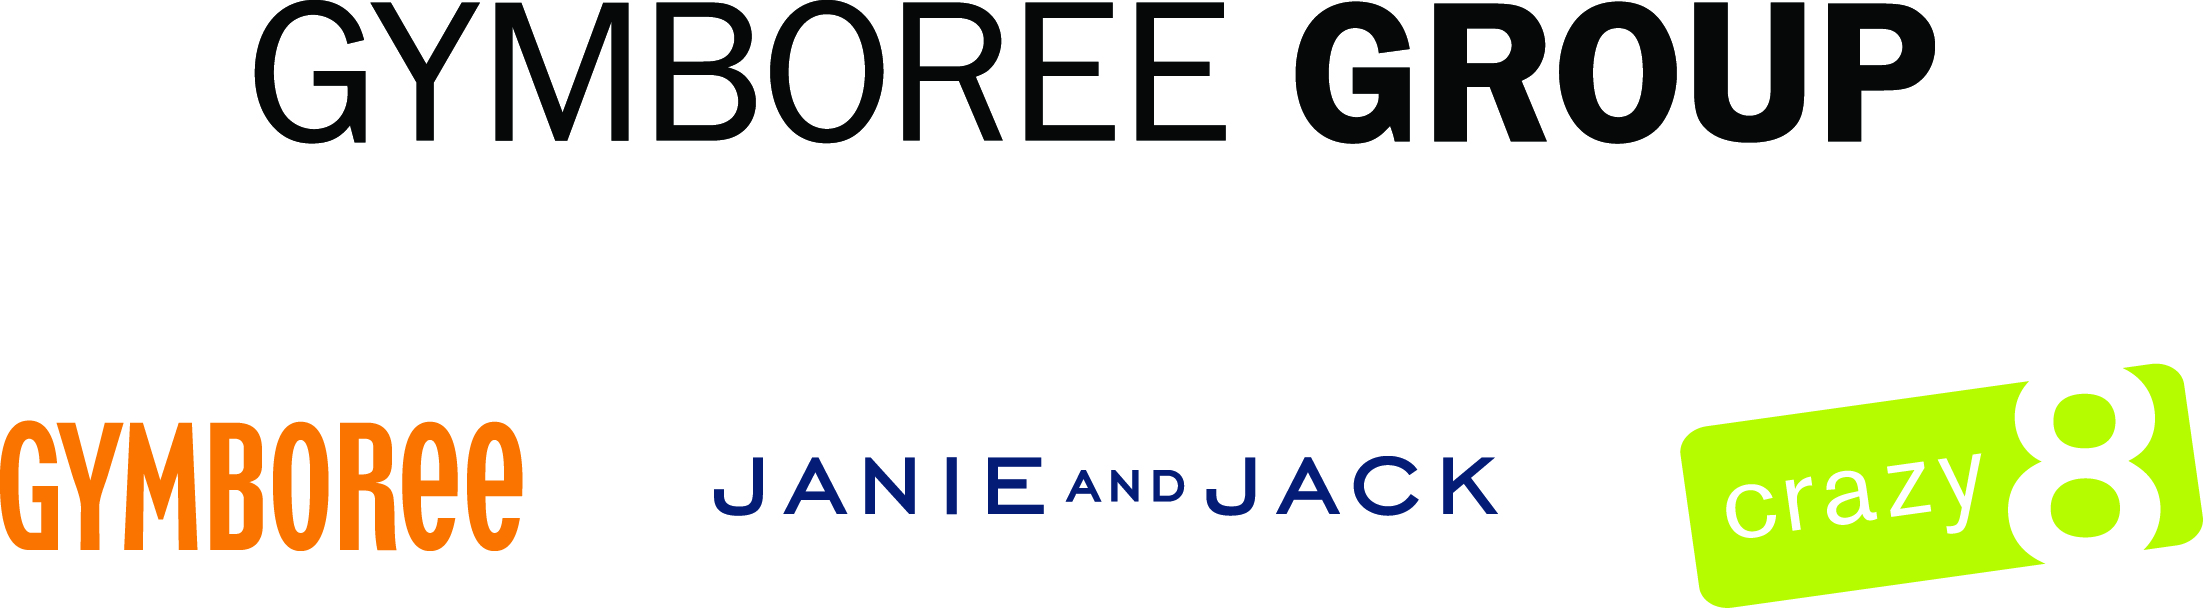 Gymboree Group logo